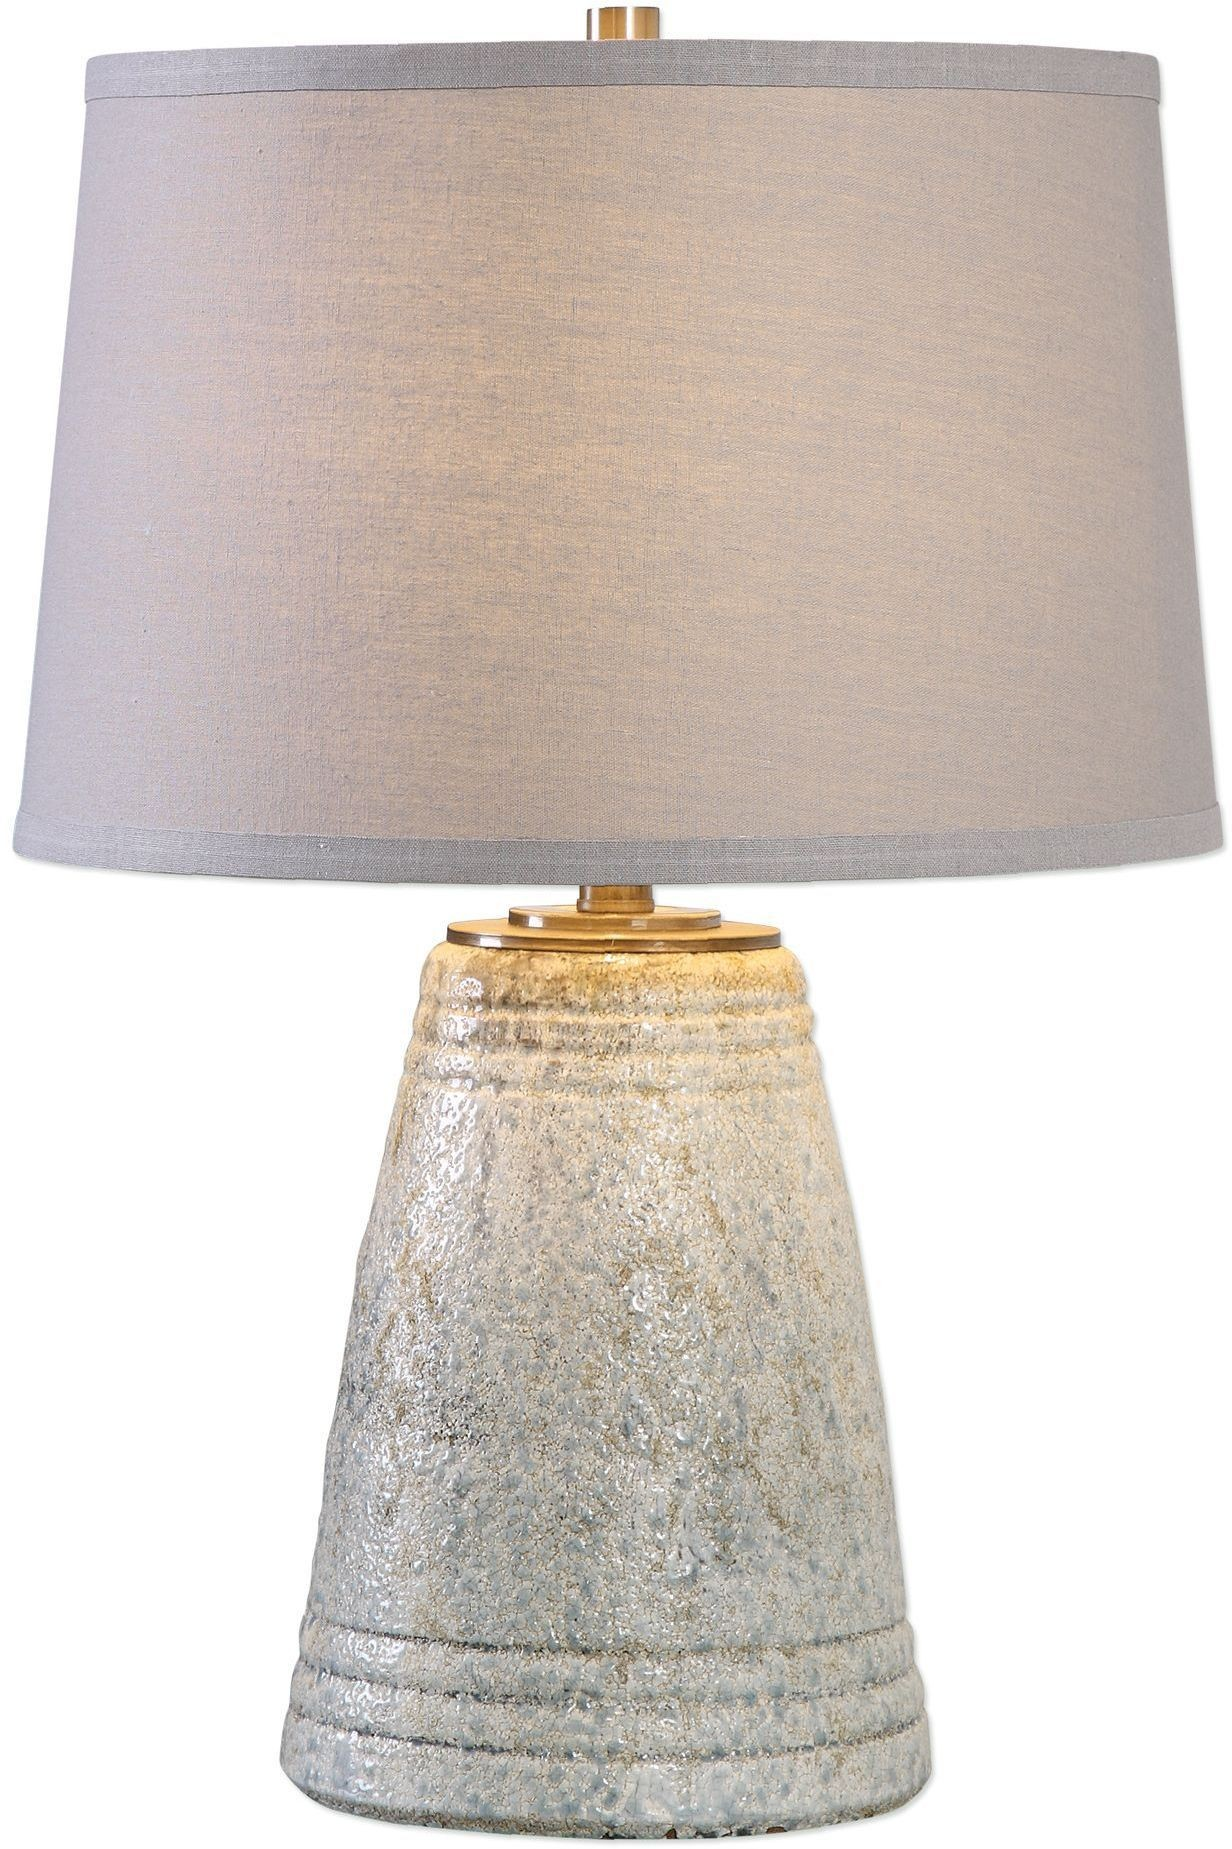 Cholet Textured Gray Ceramic Table Lamp From Uttermost